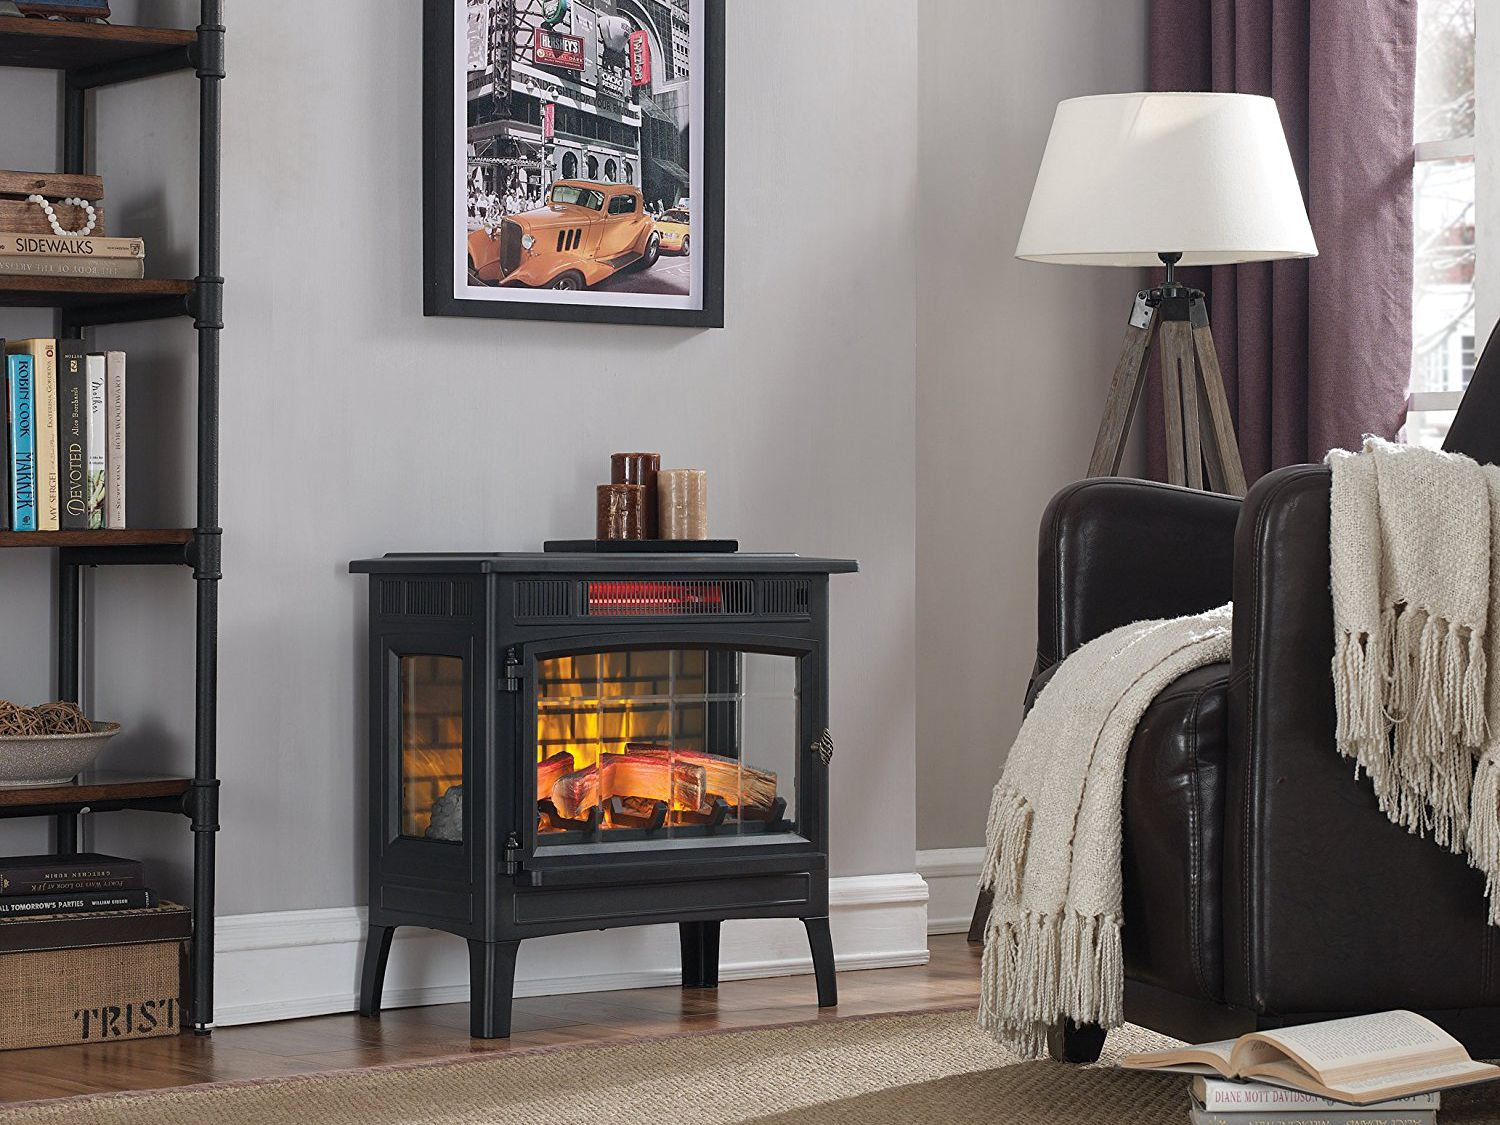 Phenomenal The 7 Best Electric Fireplace Heaters Of 2019 Download Free Architecture Designs Terchretrmadebymaigaardcom